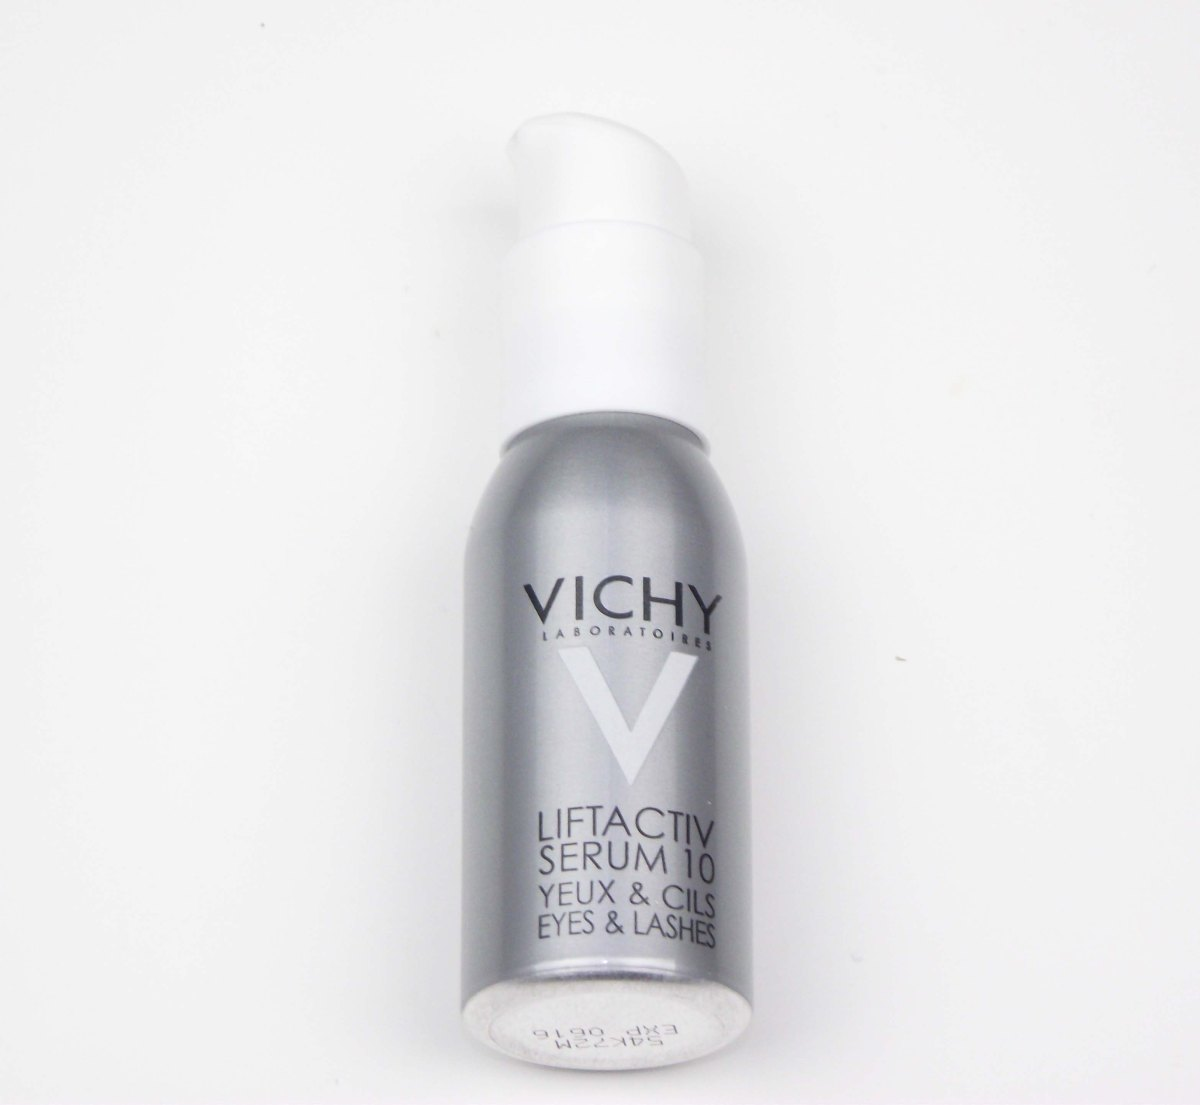 Spotlight: Vichy LiftActiv Serum 10 Eyes & Lashes